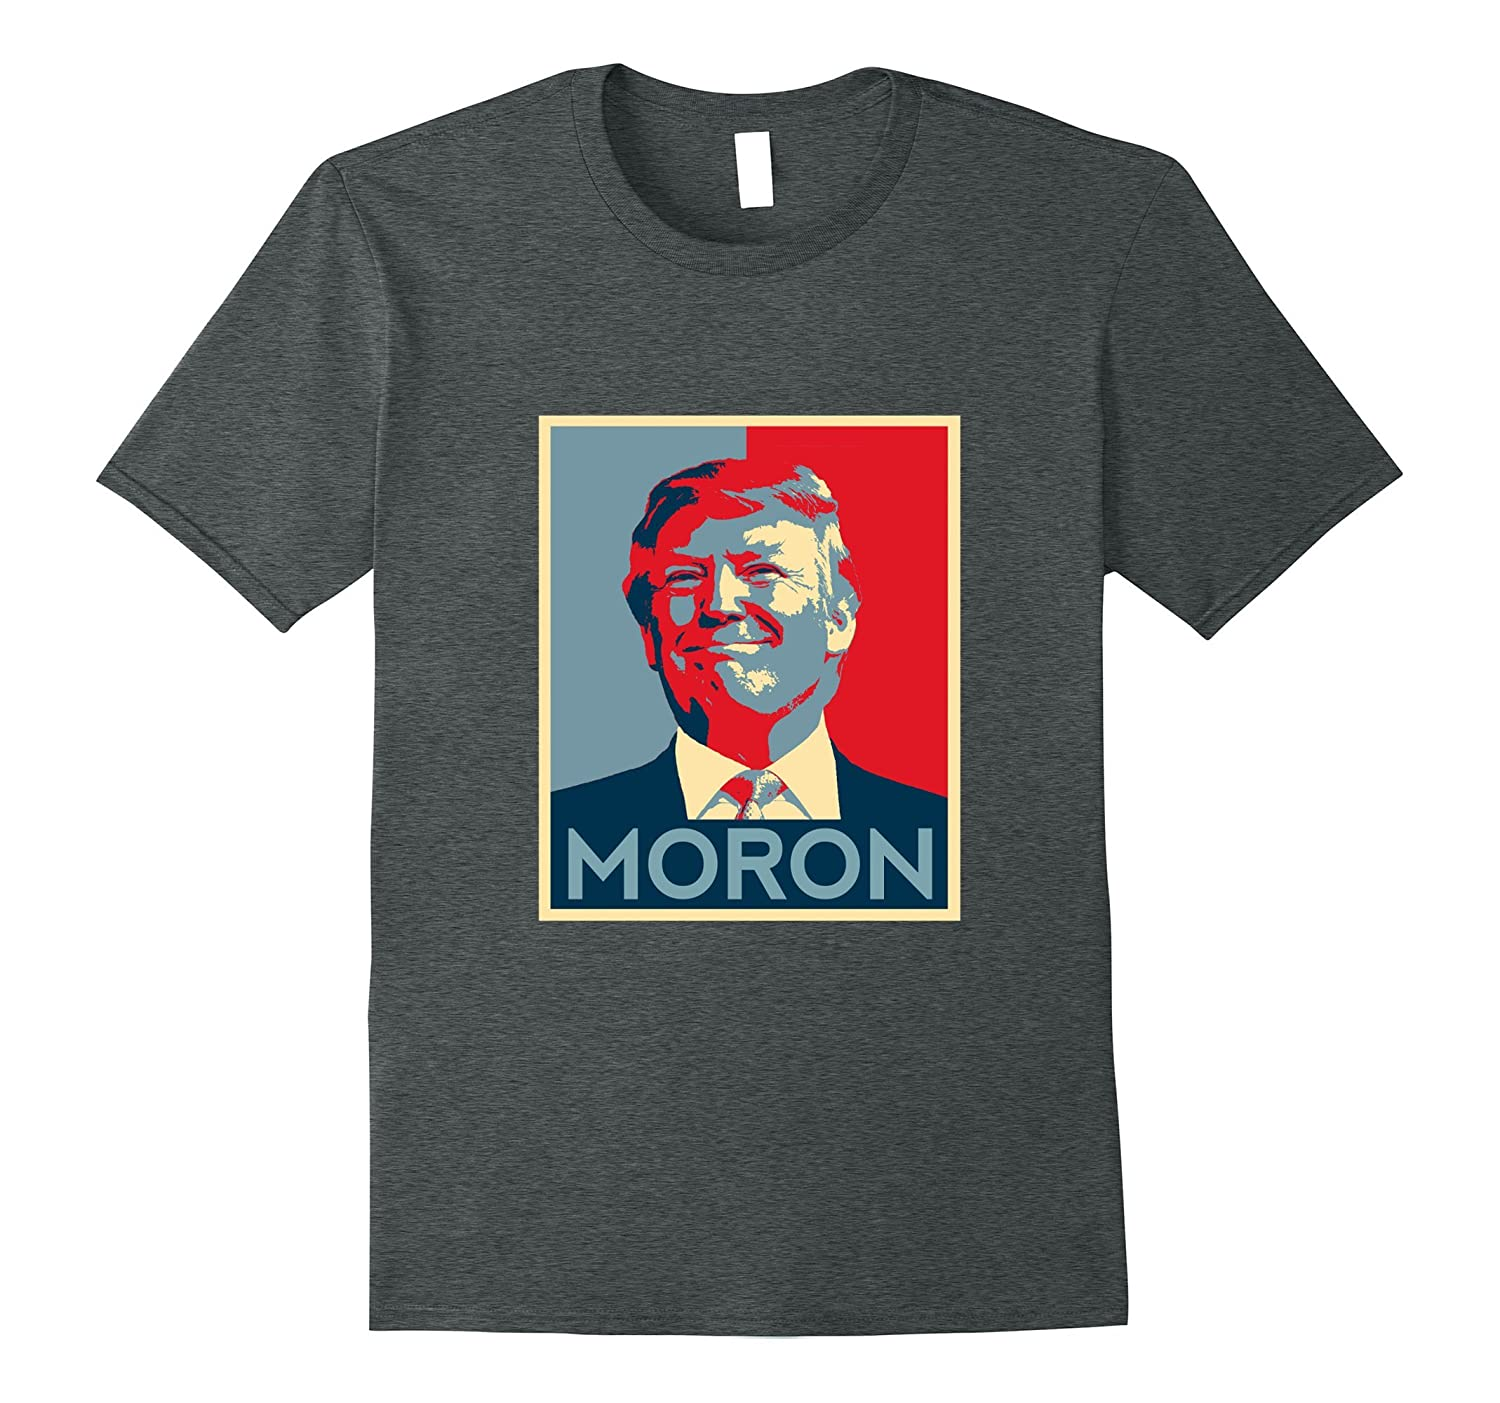 anti trump gear resistance tee shirts liberal gifts moron cd canditee. Black Bedroom Furniture Sets. Home Design Ideas